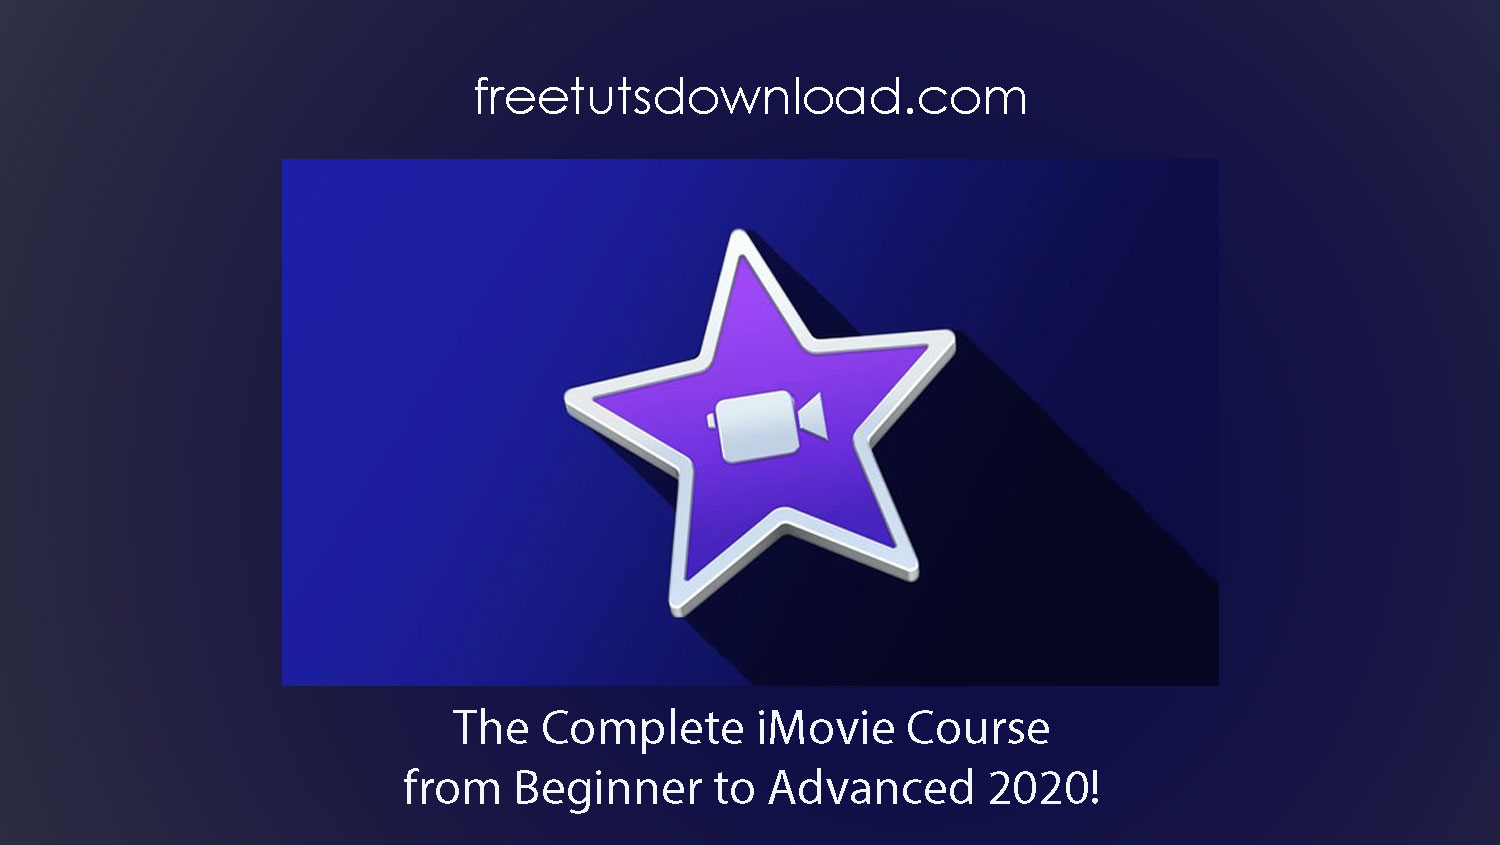 The Complete iMovie Course - from Beginner to Advanced 2020!